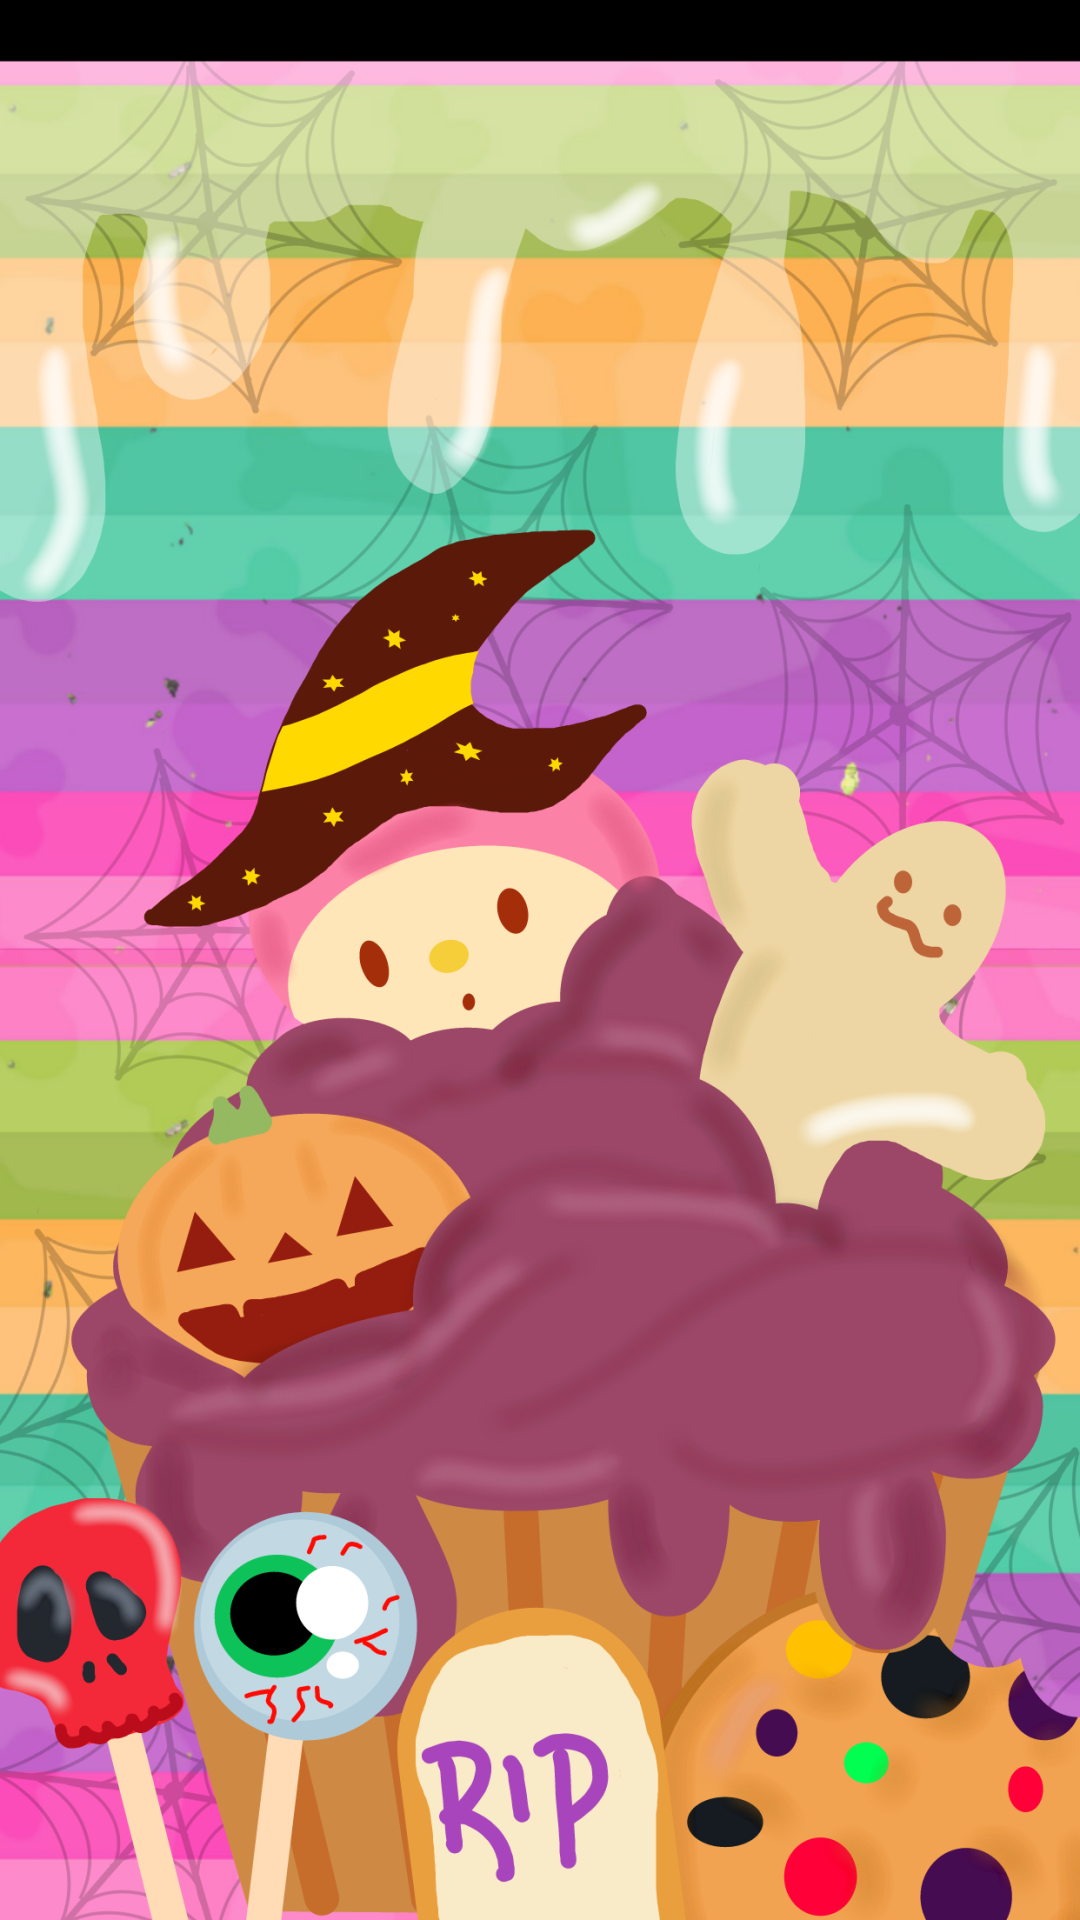 Halloween Cupcake Made By Me With Images Halloween Wallpaper Cupcakes Wallpaper Cute Wallpapers